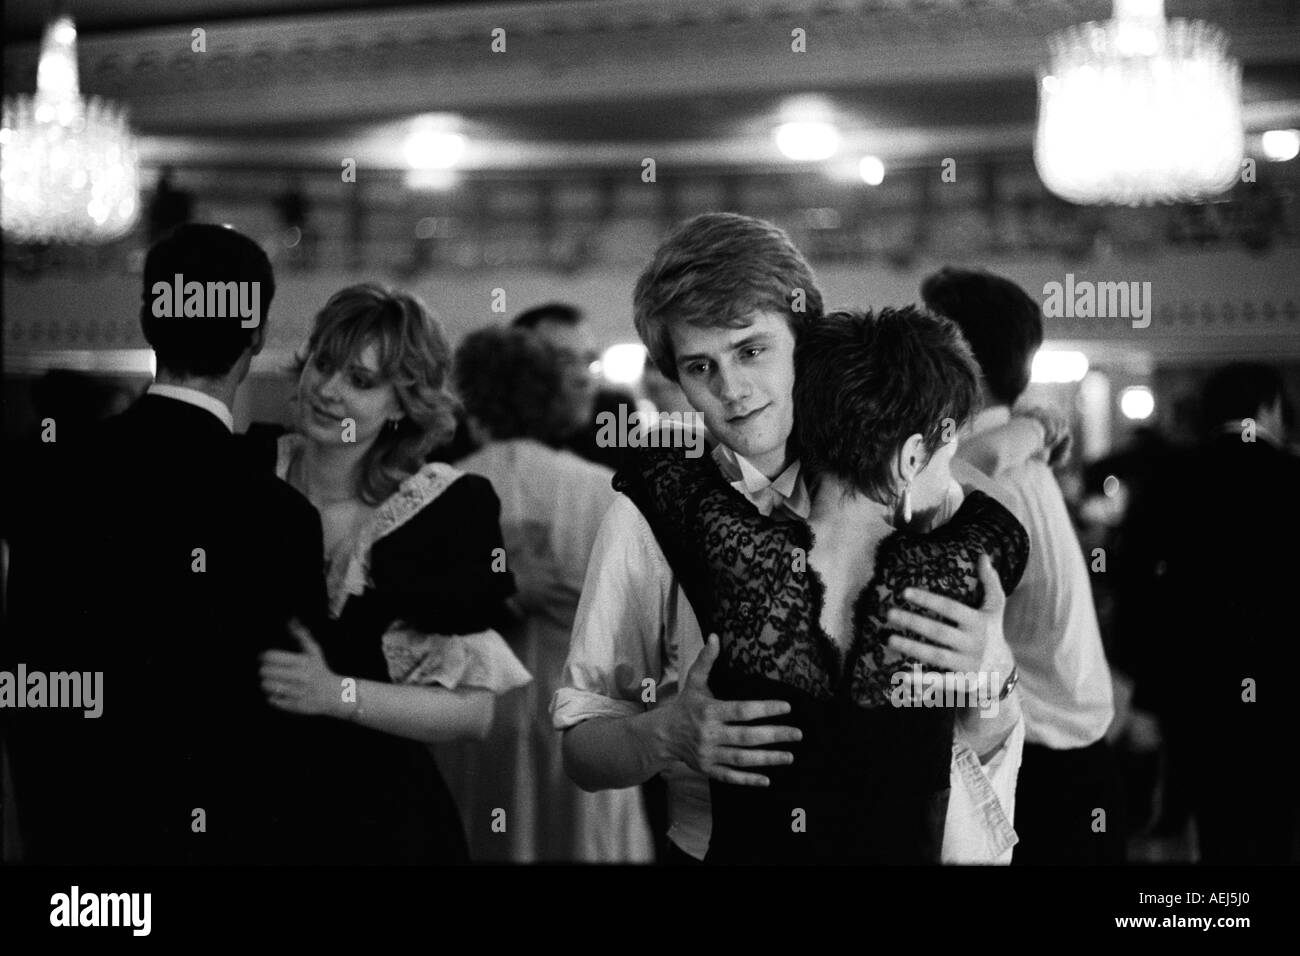 Baile de la rosa Grosvenor House Hotel, Park Lane, Londres, Inglaterra 1982. 1980 UK HOMER SYKES Imagen De Stock